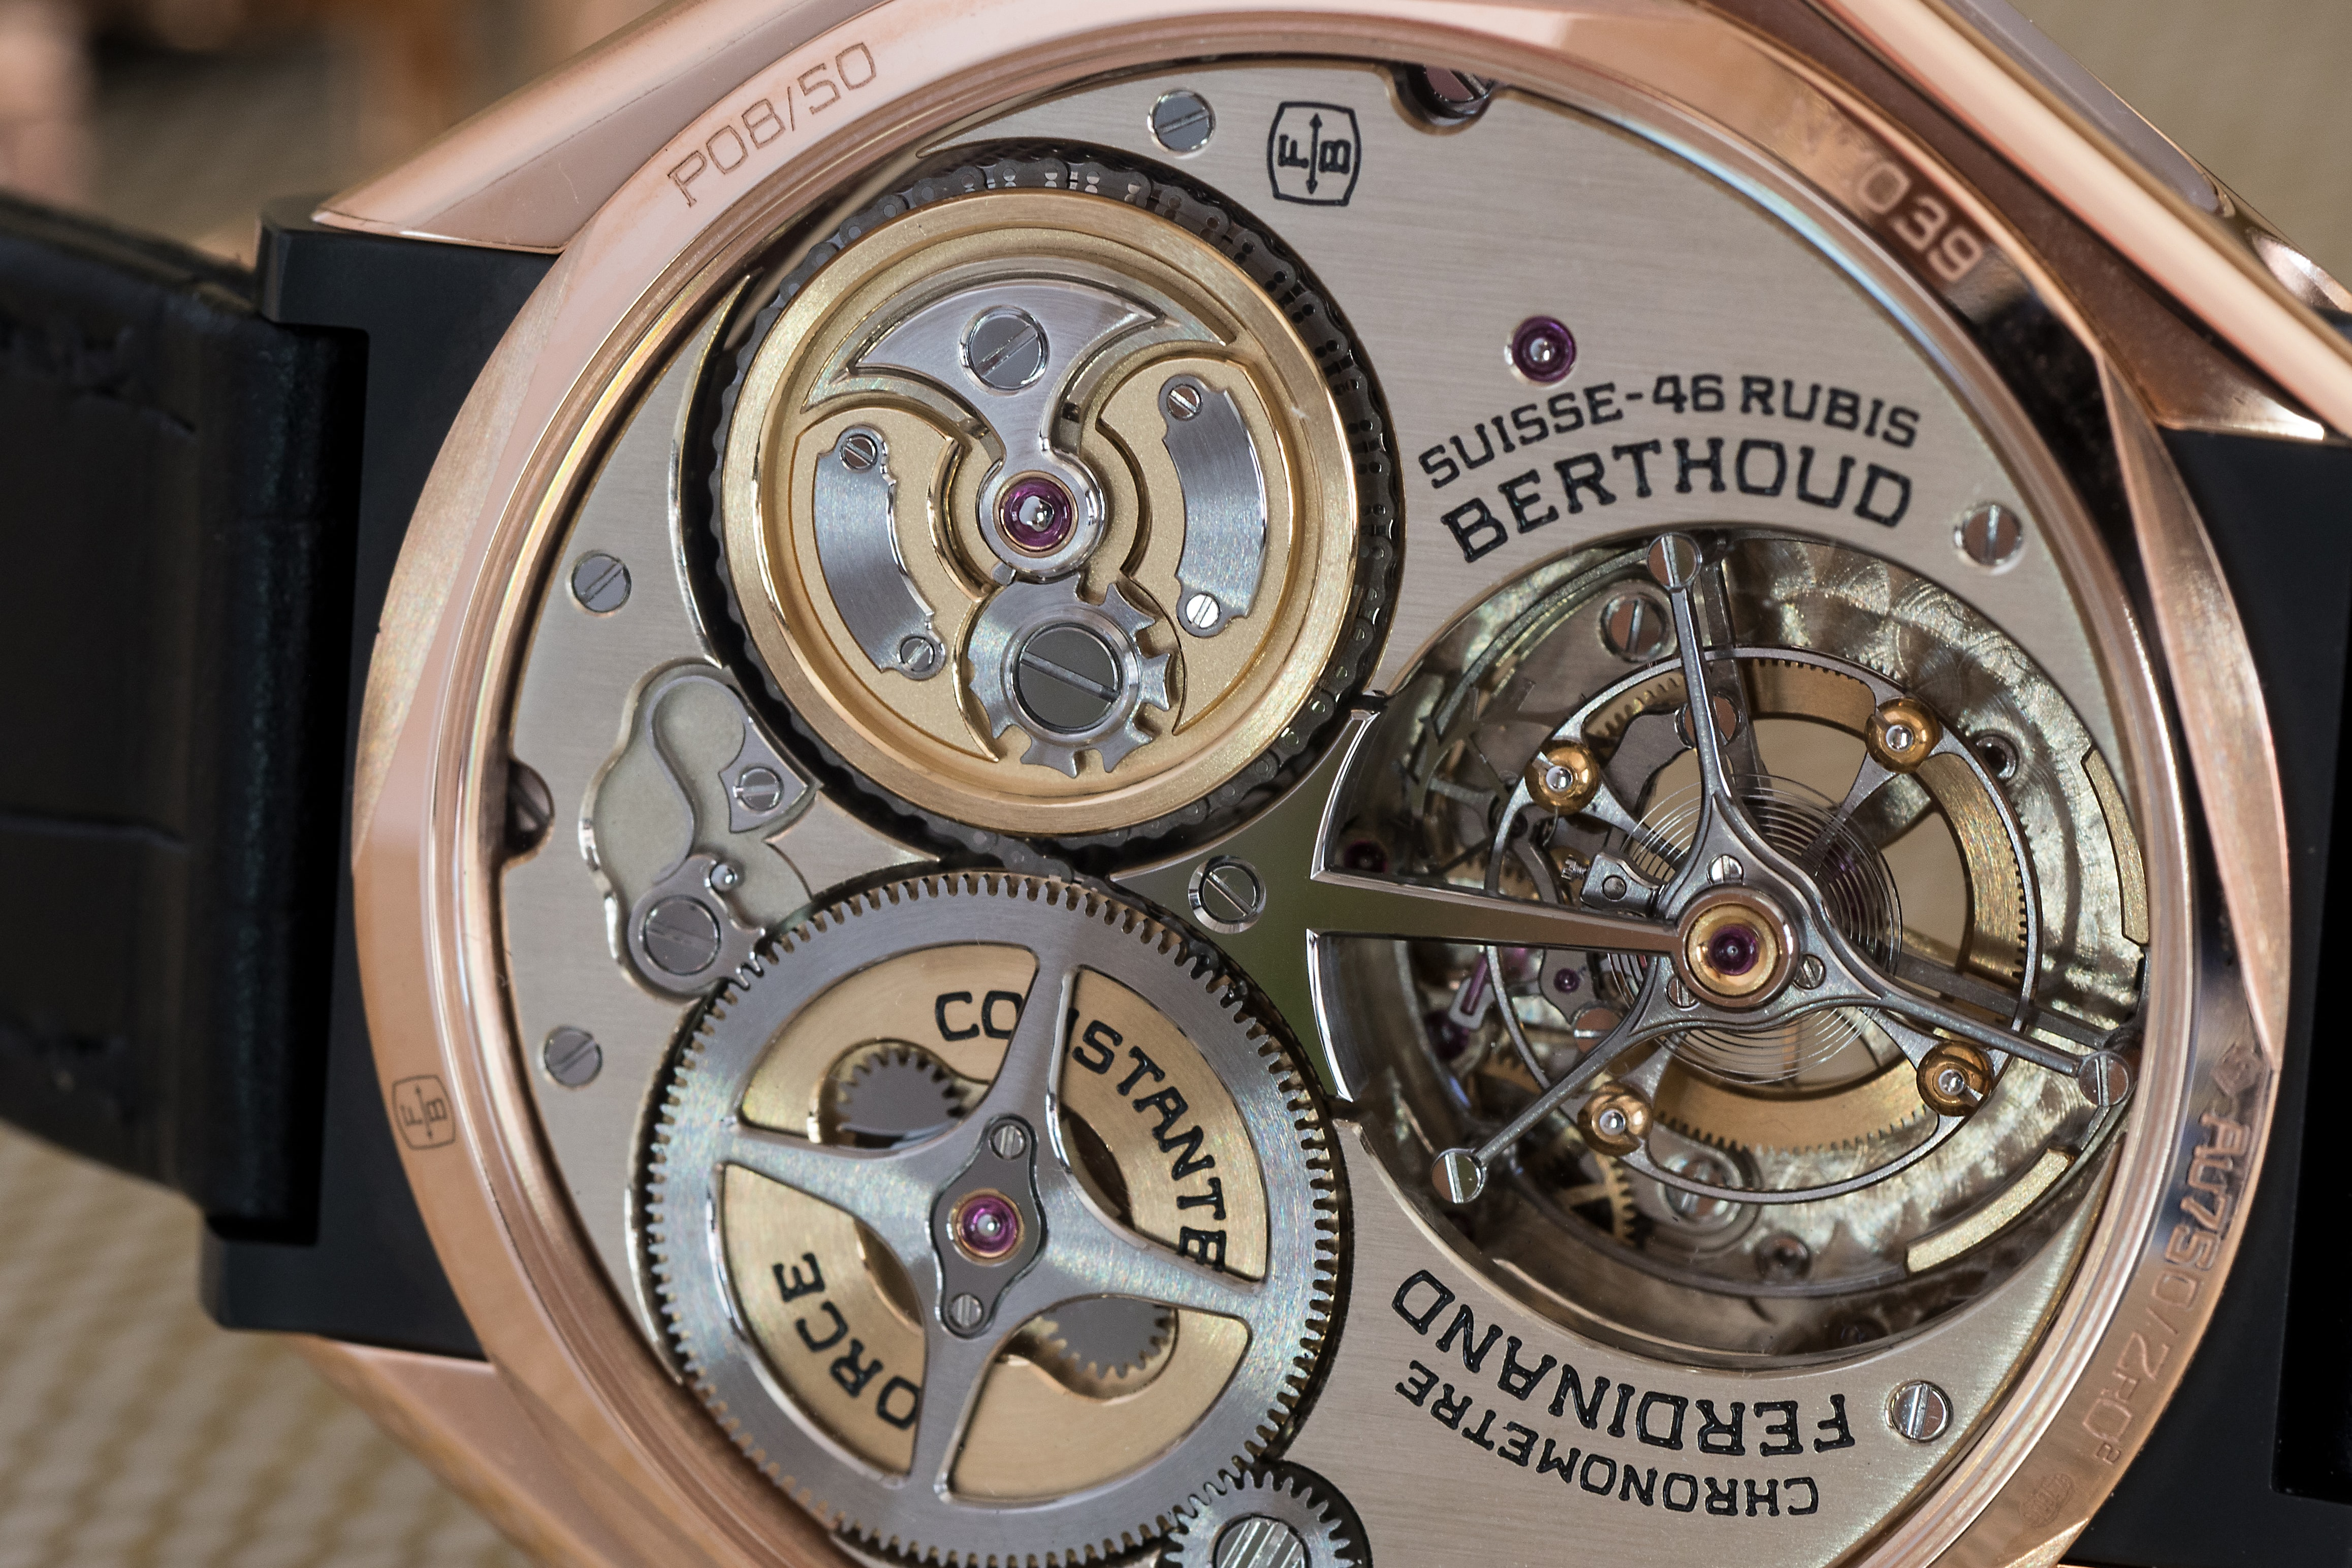 Chronomtre FB 1 Caliber FB-T.FC closeup A Week On The Wrist: The Ferdinand Berthoud Chronomtre FB 1 A Week On The Wrist: The Ferdinand Berthoud Chronomtre FB 1 clean movement